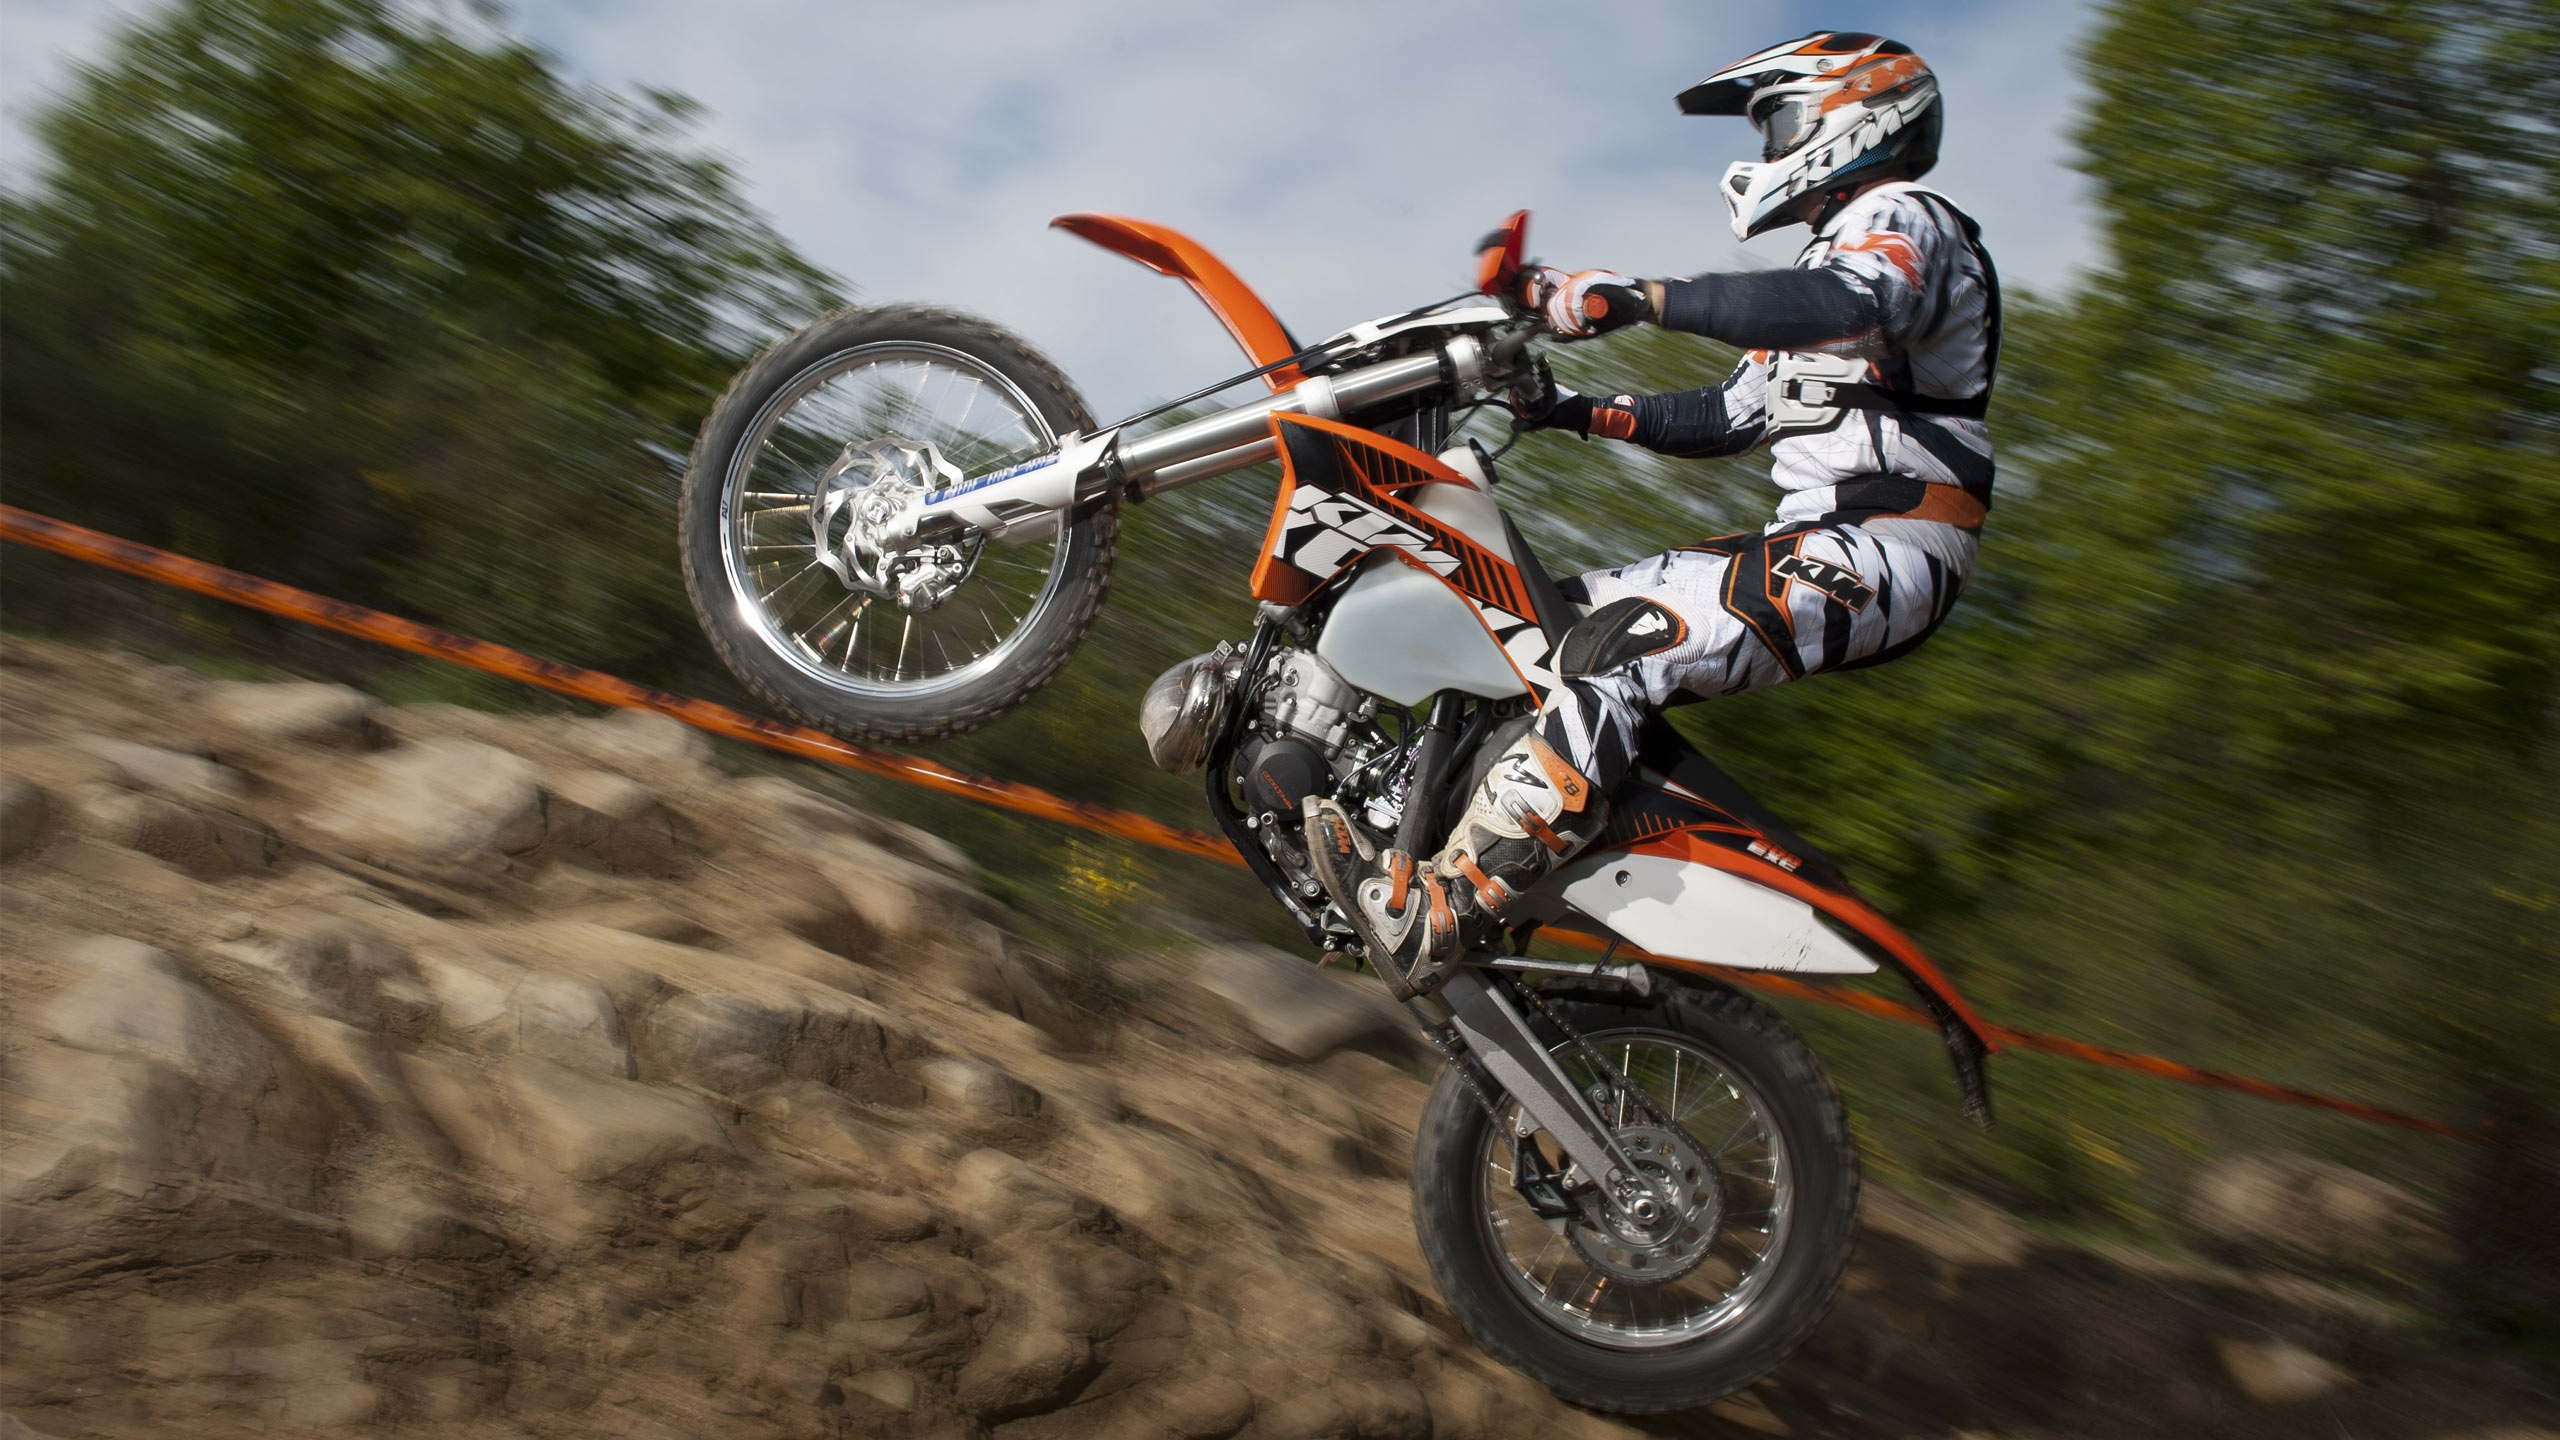 KTM Motocross Offroad Wallpaper HD 817 3750 Wallpaper 2560x1440